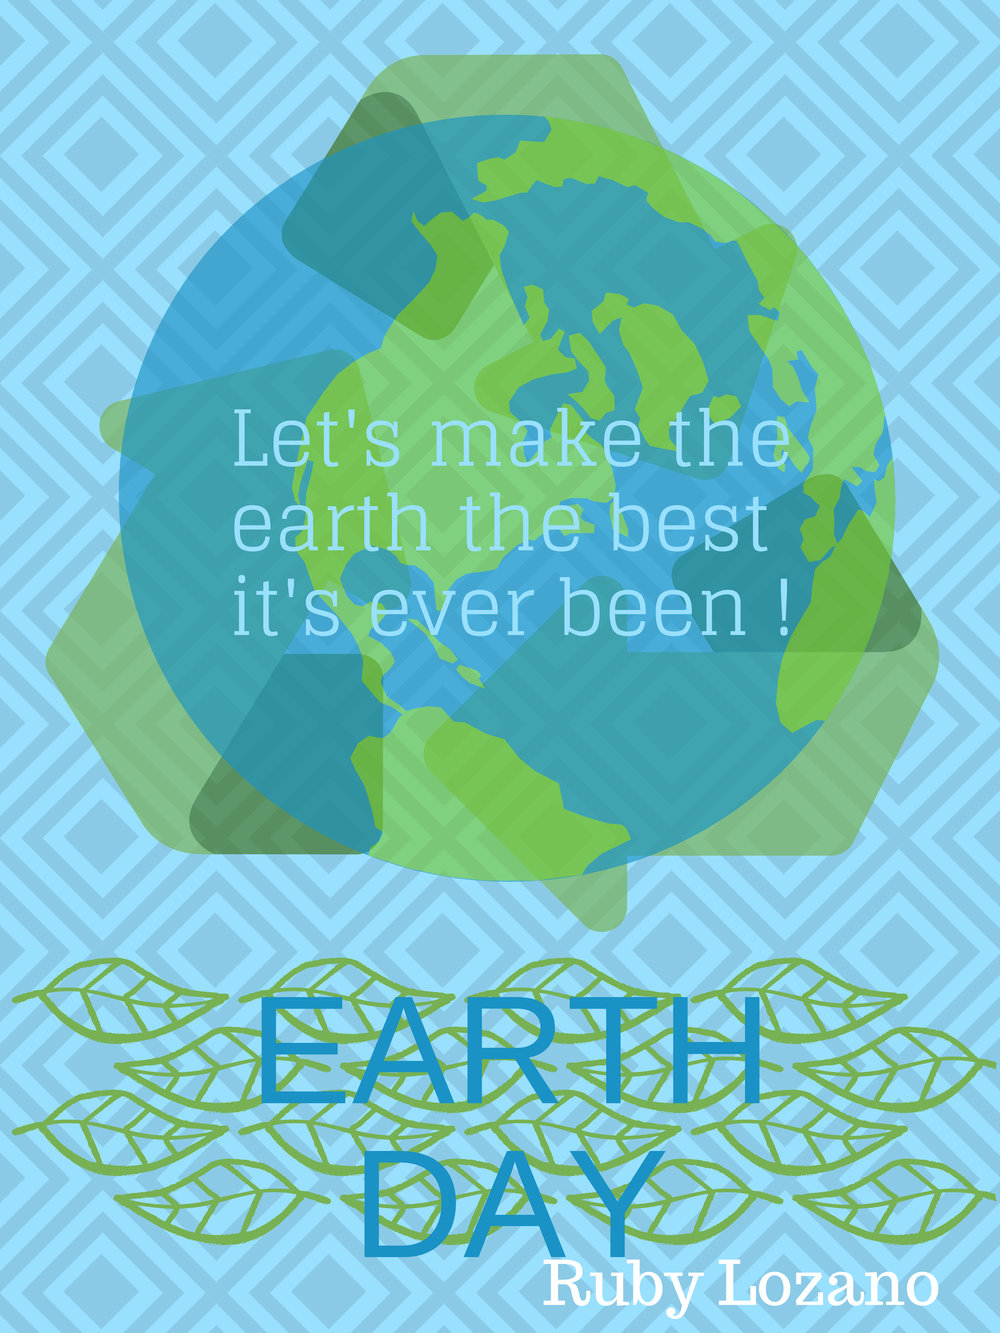 Earth Day Poster .jpg